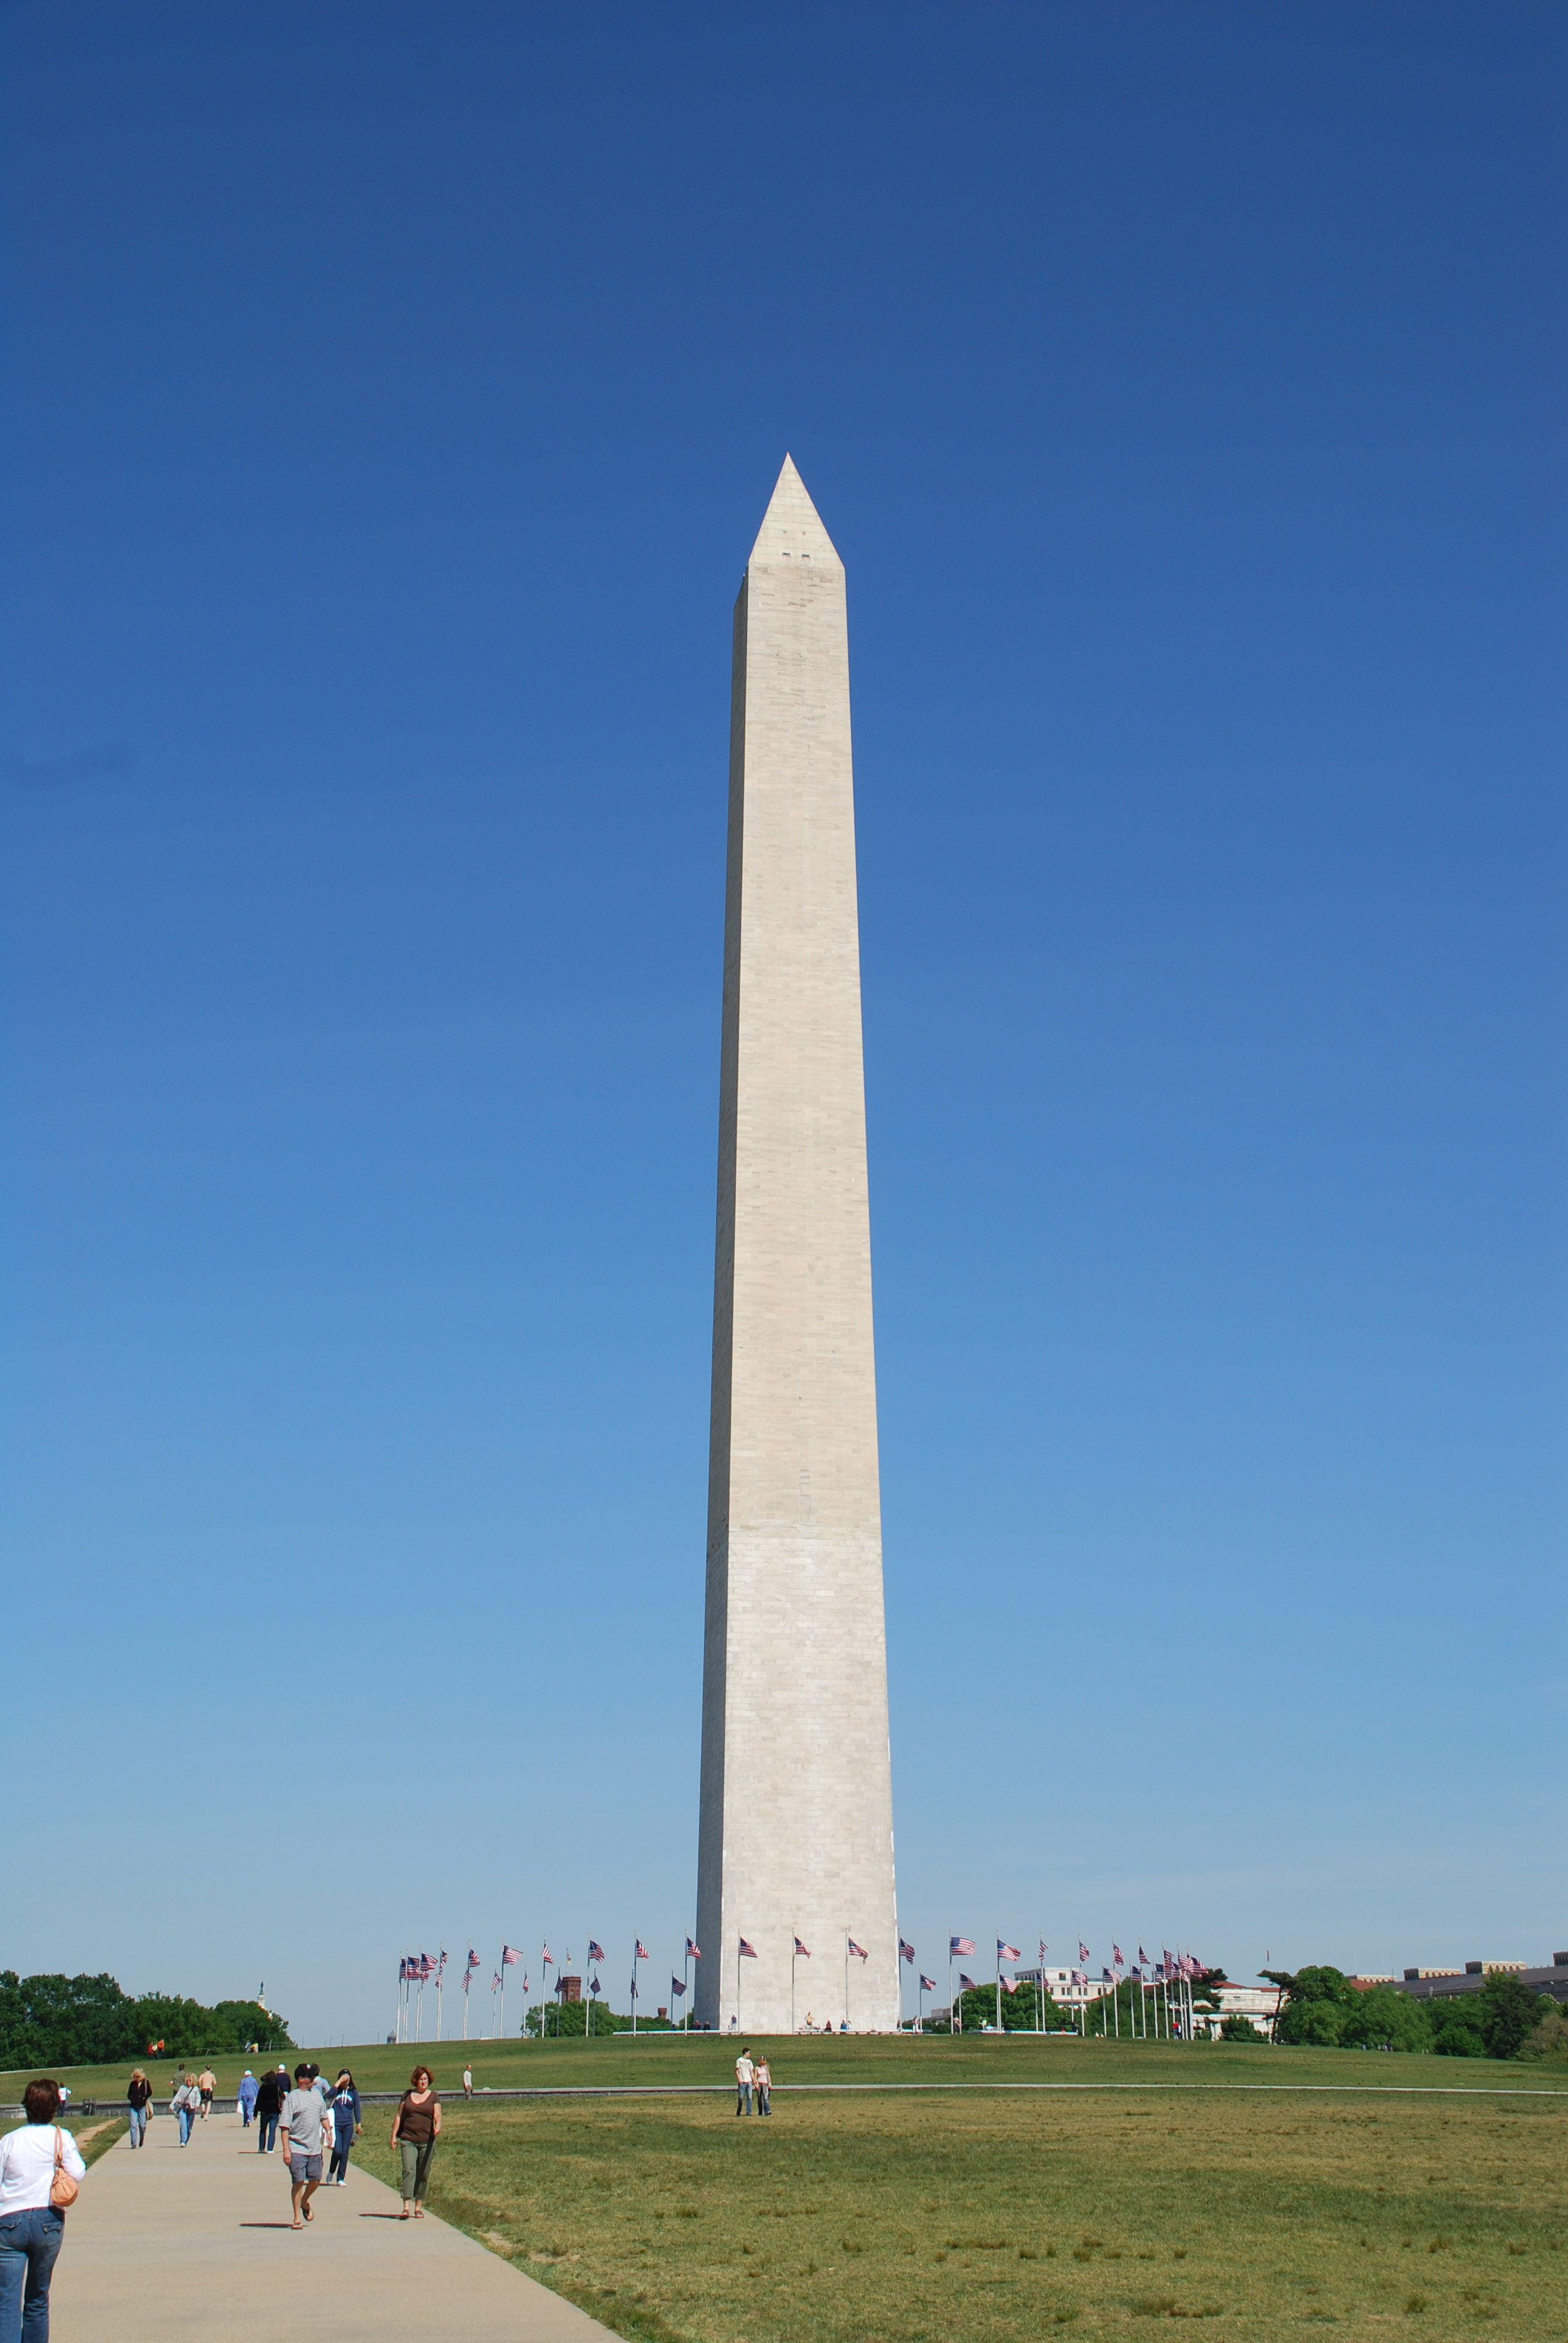 Washington Monument, National Mall : Travel Wallpaper and Stock Photo